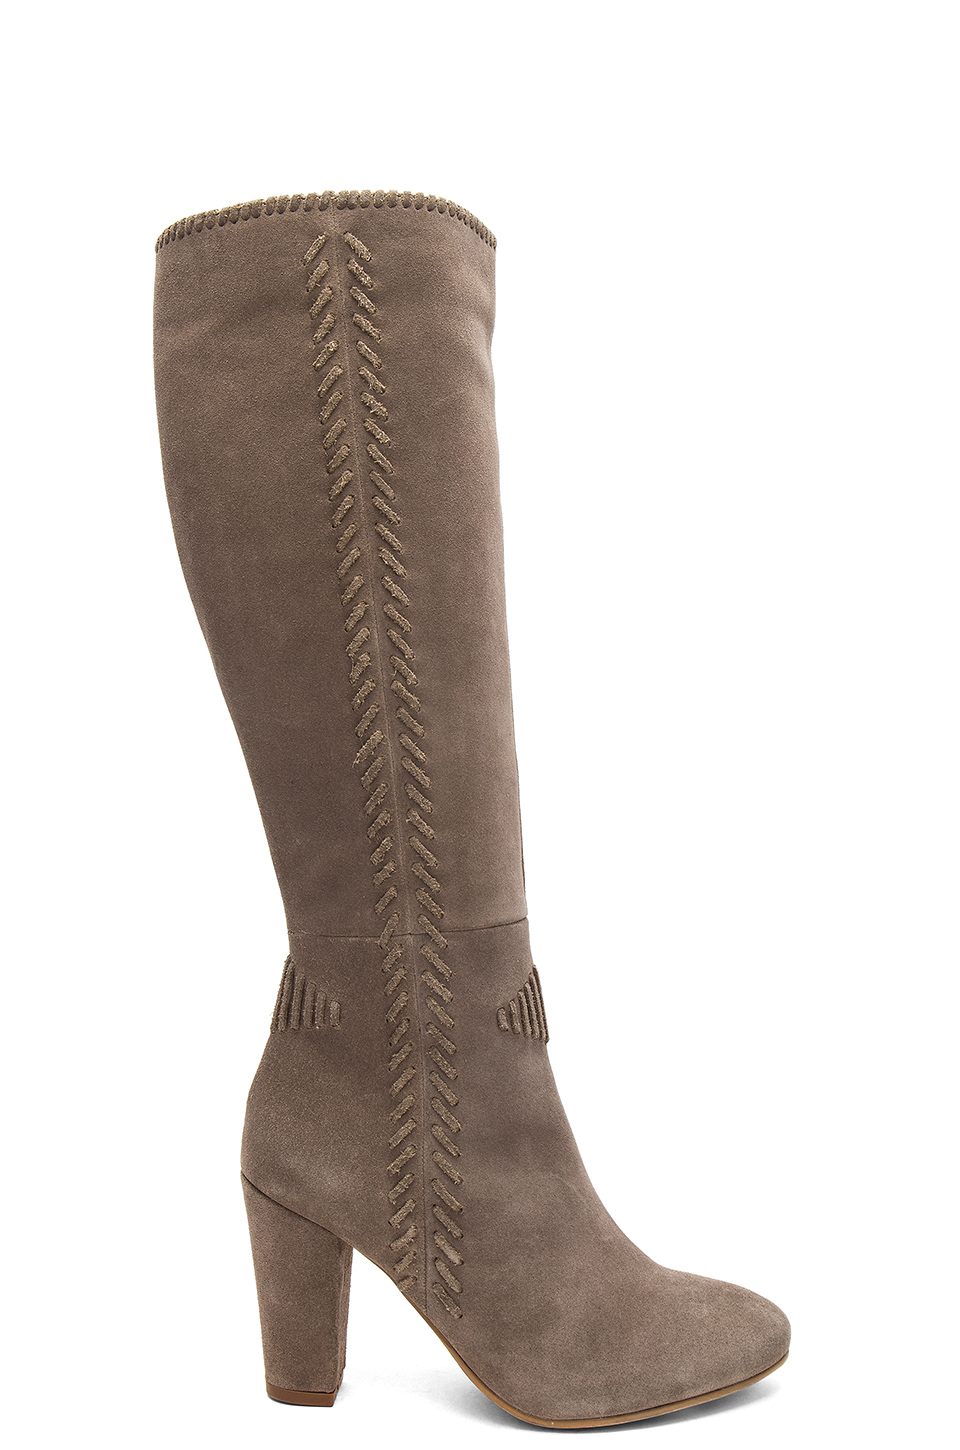 Seychelles Reserved Boot in Taupe Suede